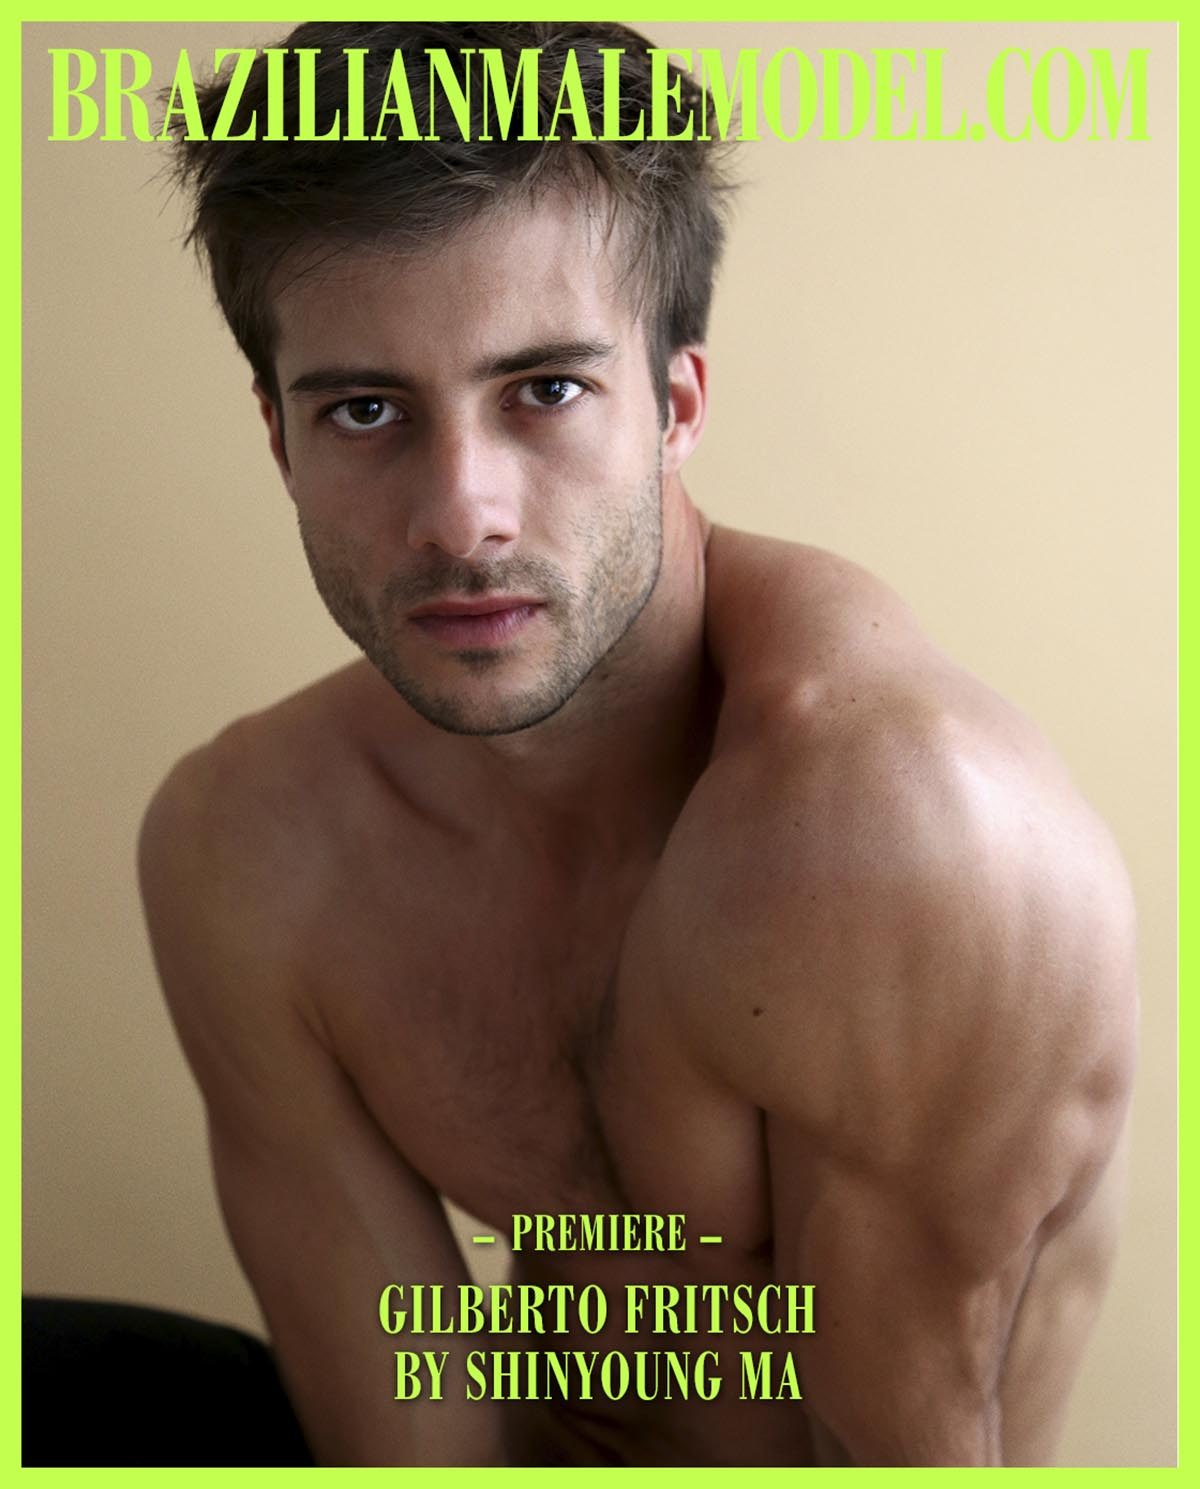 Gilberto Fritsch by Shinyoung Ma